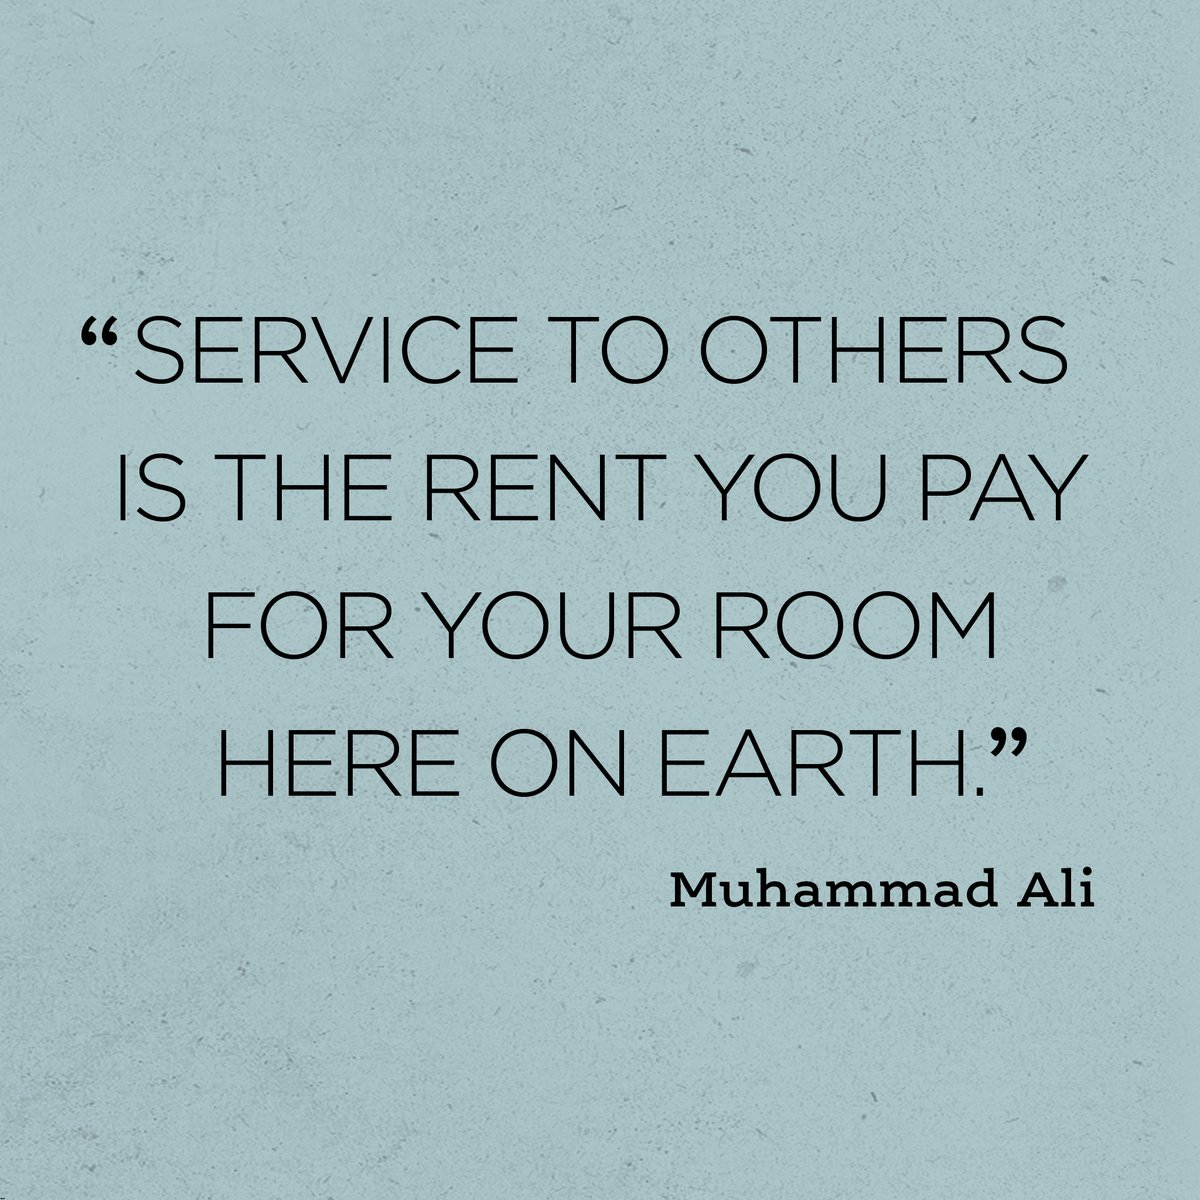 Earth quote Service to others is the rent you pay for your room here on Earth.